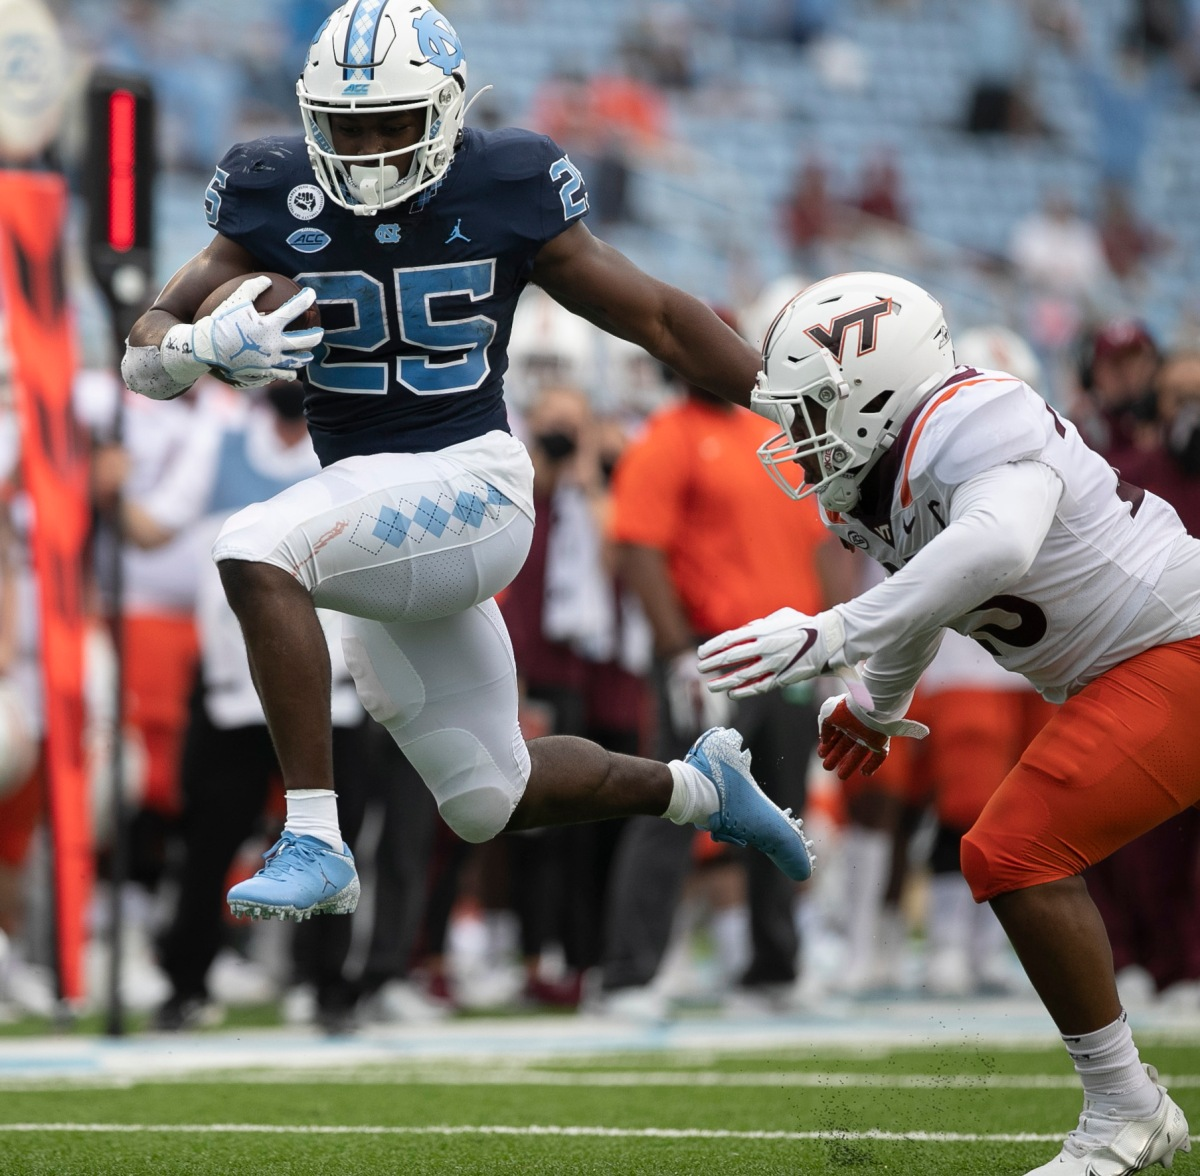 Long passes, Newsome ignite UNC's offense and Carter, Williams run by Virginia Tech